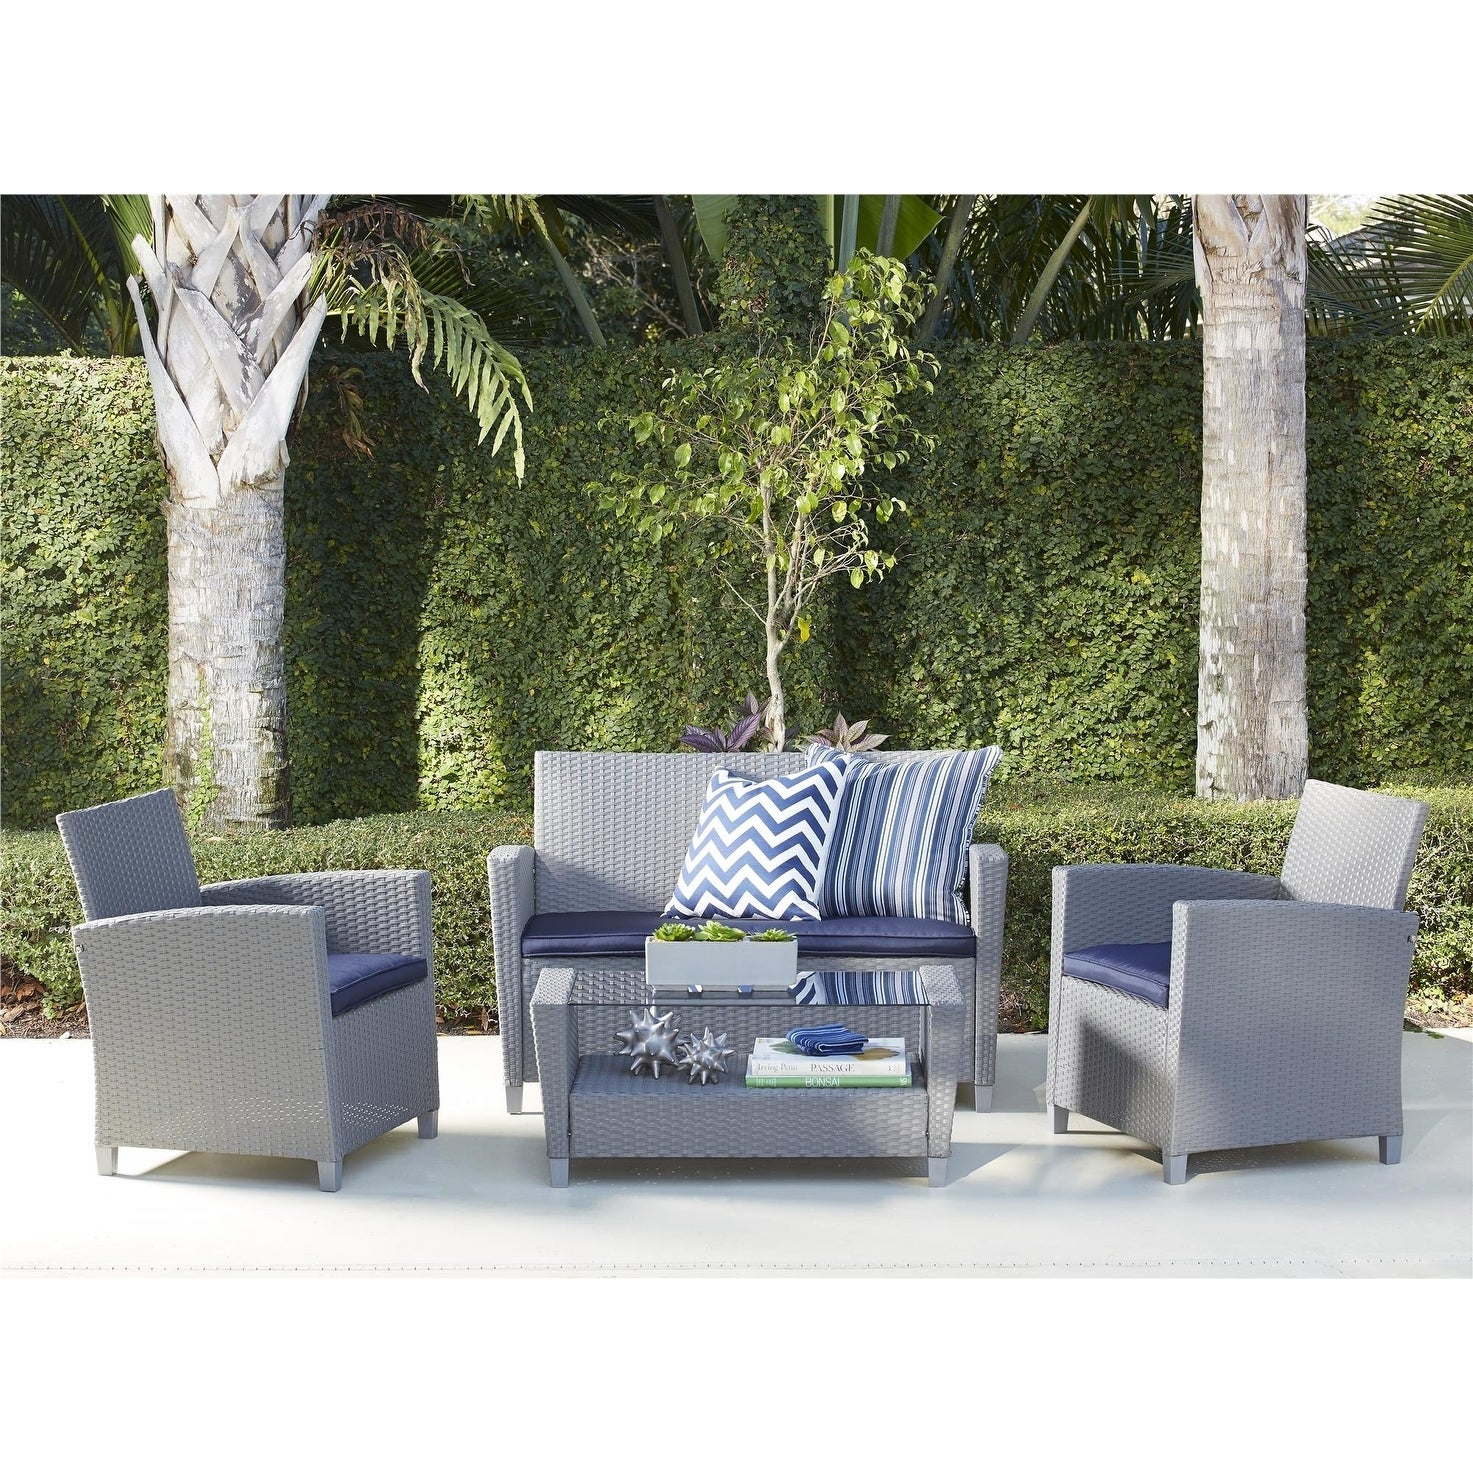 Terrific Cosco Outdoor 4 Piece Malmo Resin Wicker Patio Deep Seating Conversation Set Lamtechconsult Wood Chair Design Ideas Lamtechconsultcom